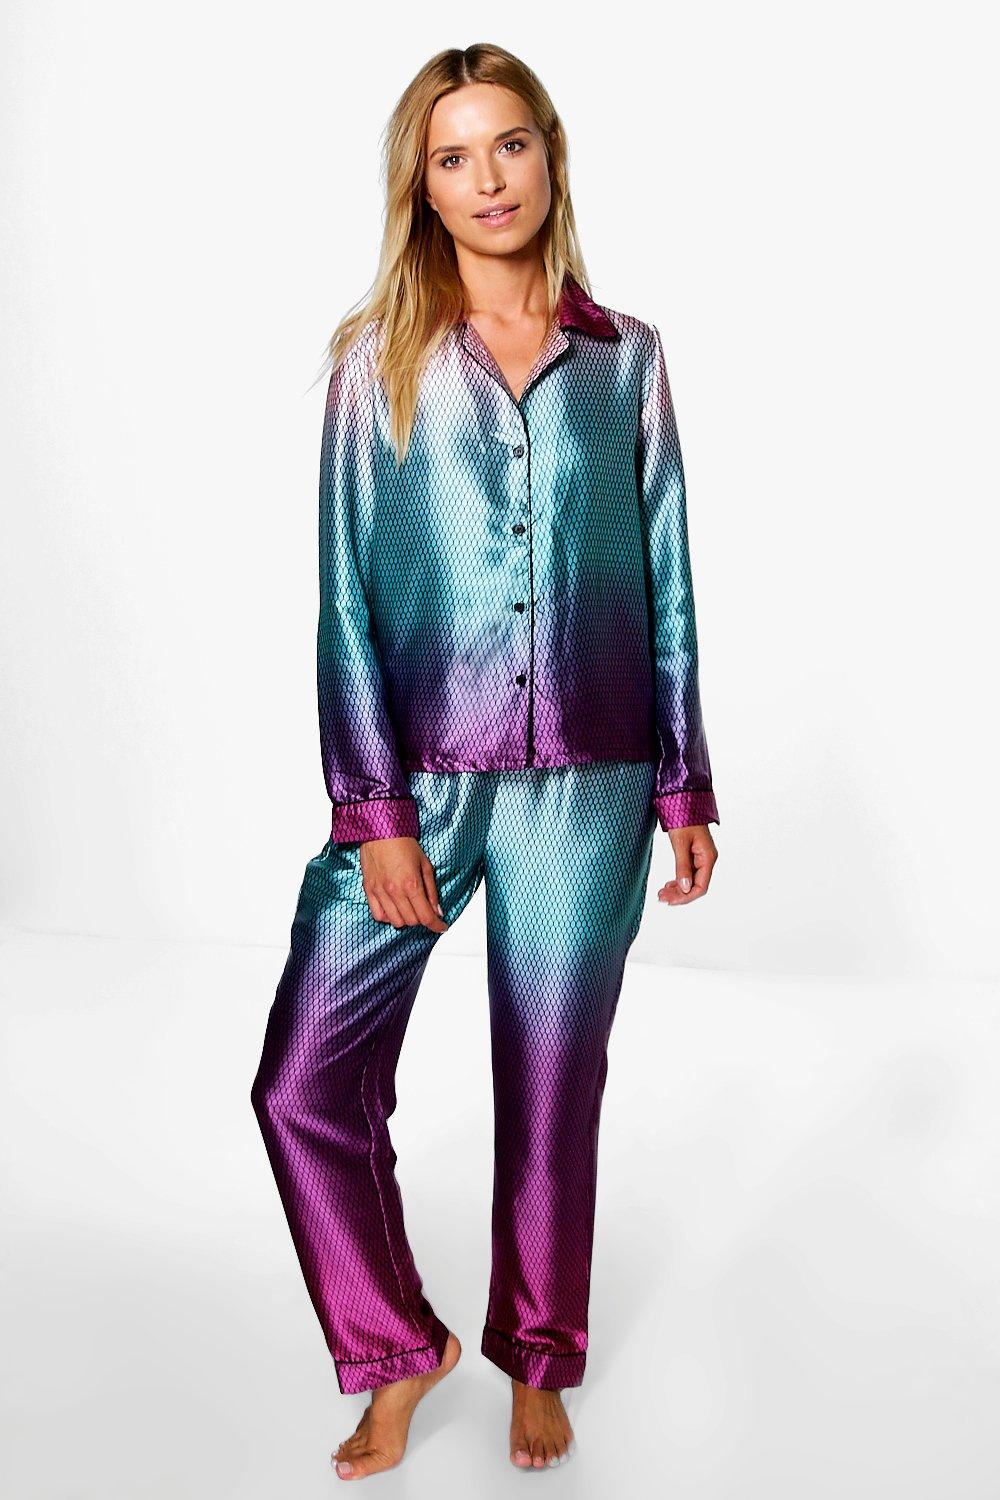 021ab183e9 Boohoo Tia Mermaid Print Satin Night Shirt + Trouser Set in Blue - Lyst